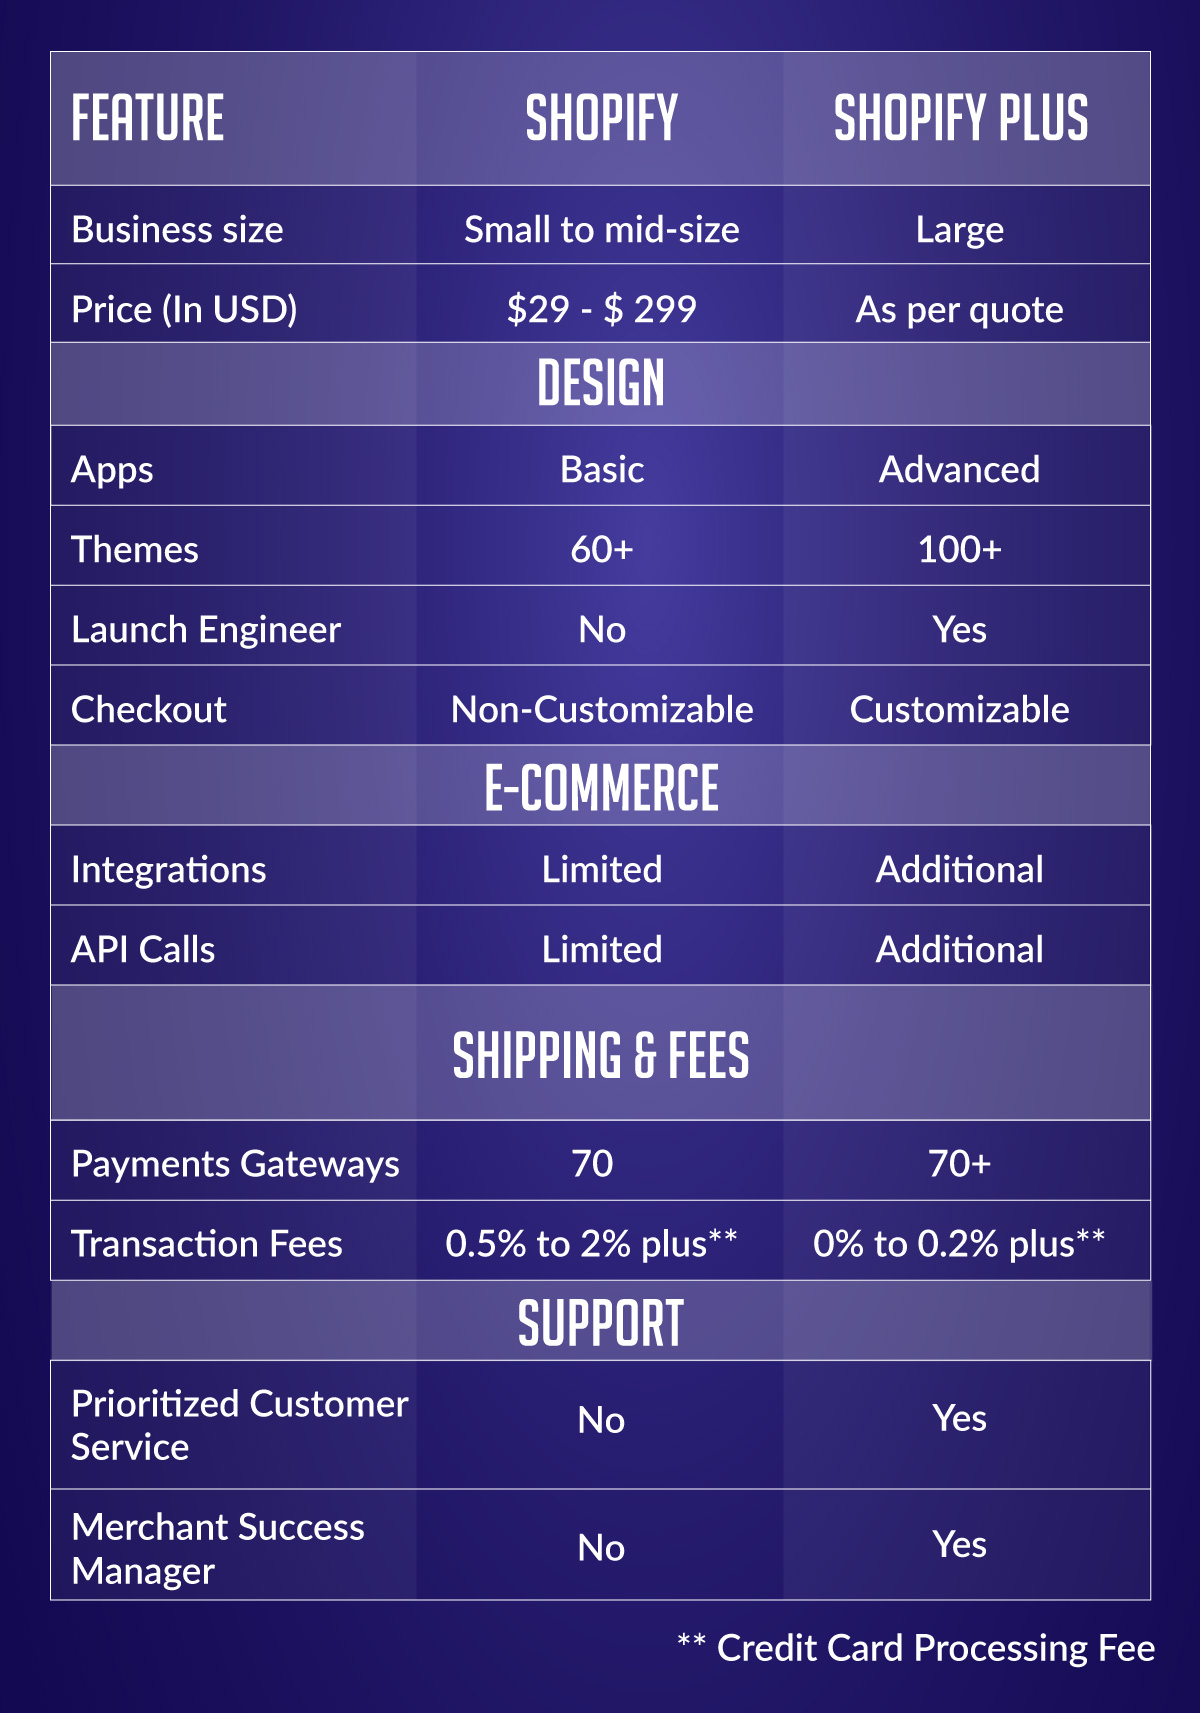 Shopify Plus the differences